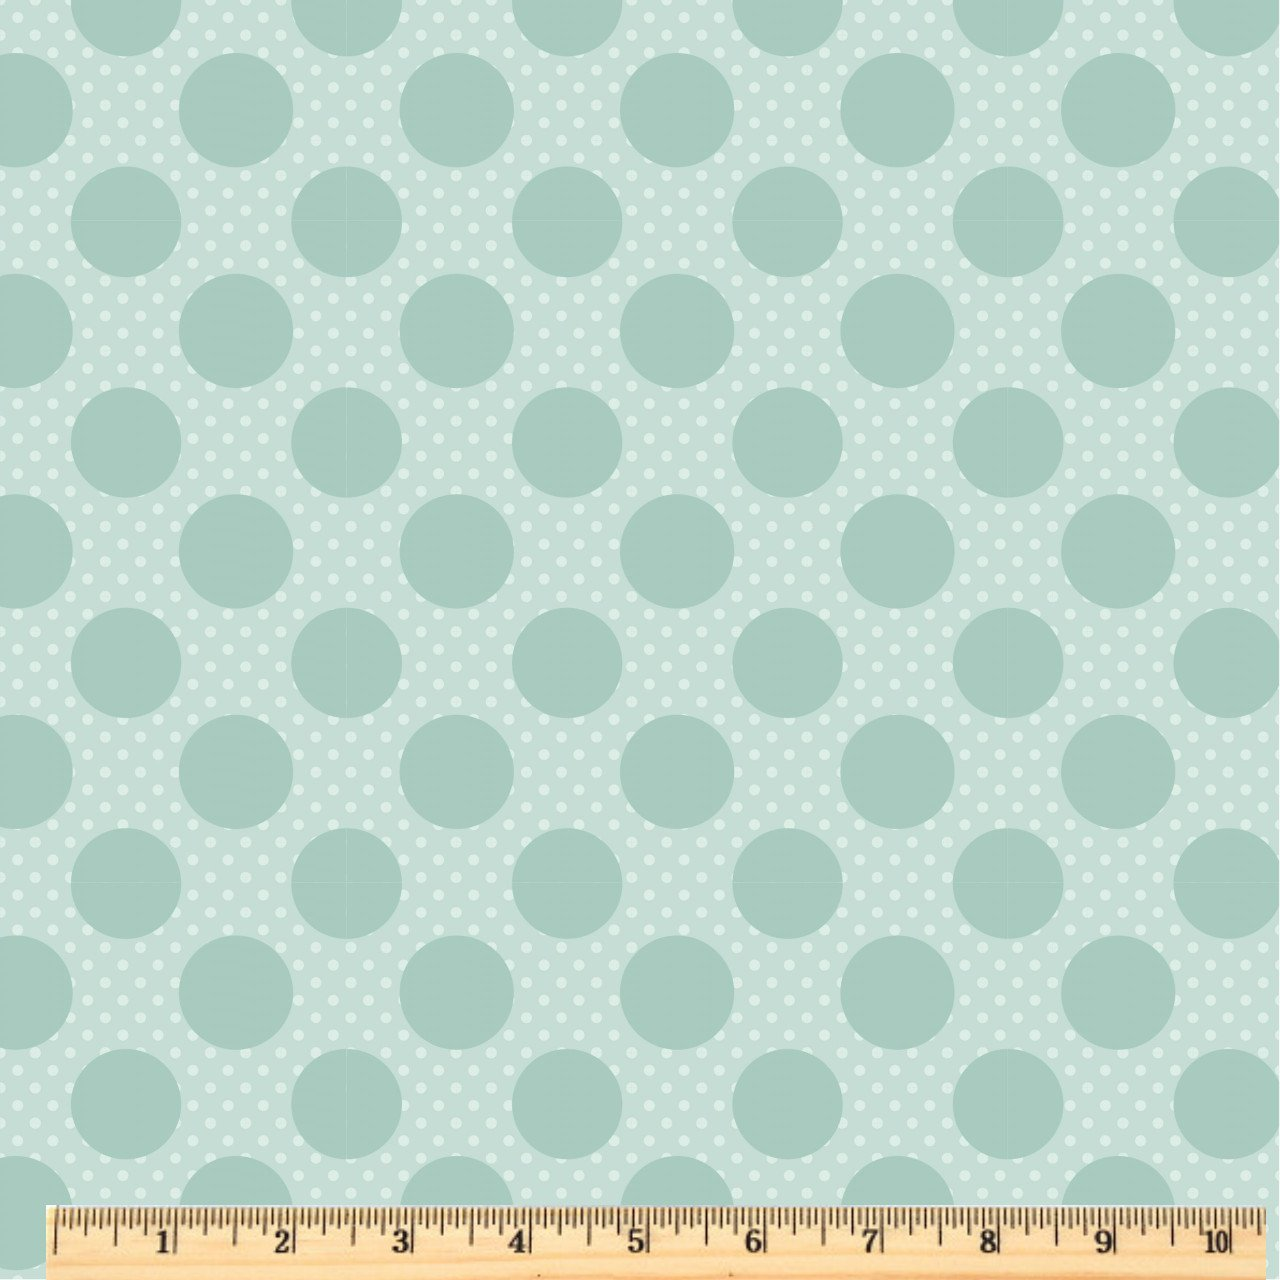 Dots & Posies - Dots on Dots - Teal